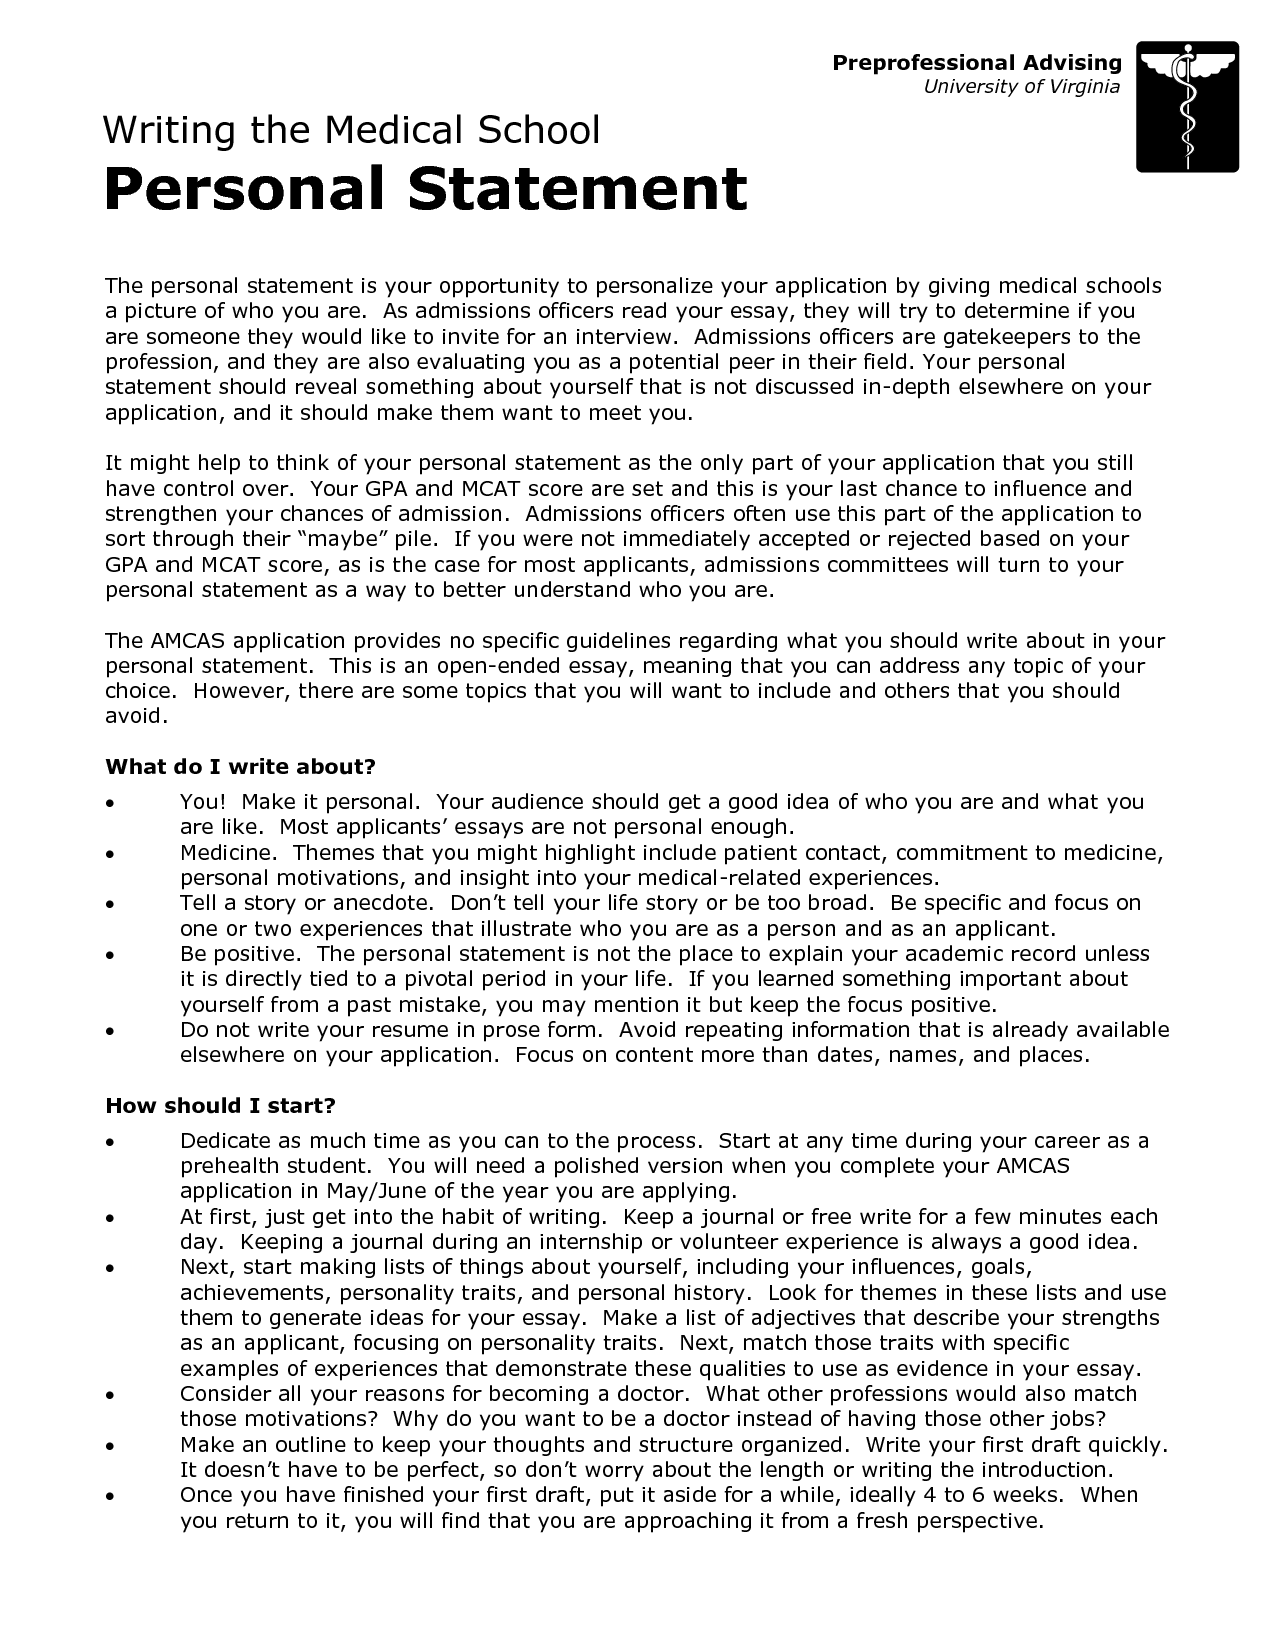 college application report writing harvard the partys over     Get into Medical School   Write the perfect personal statement  Effective  techniques   over     examples of real successful personal statements  UCAS